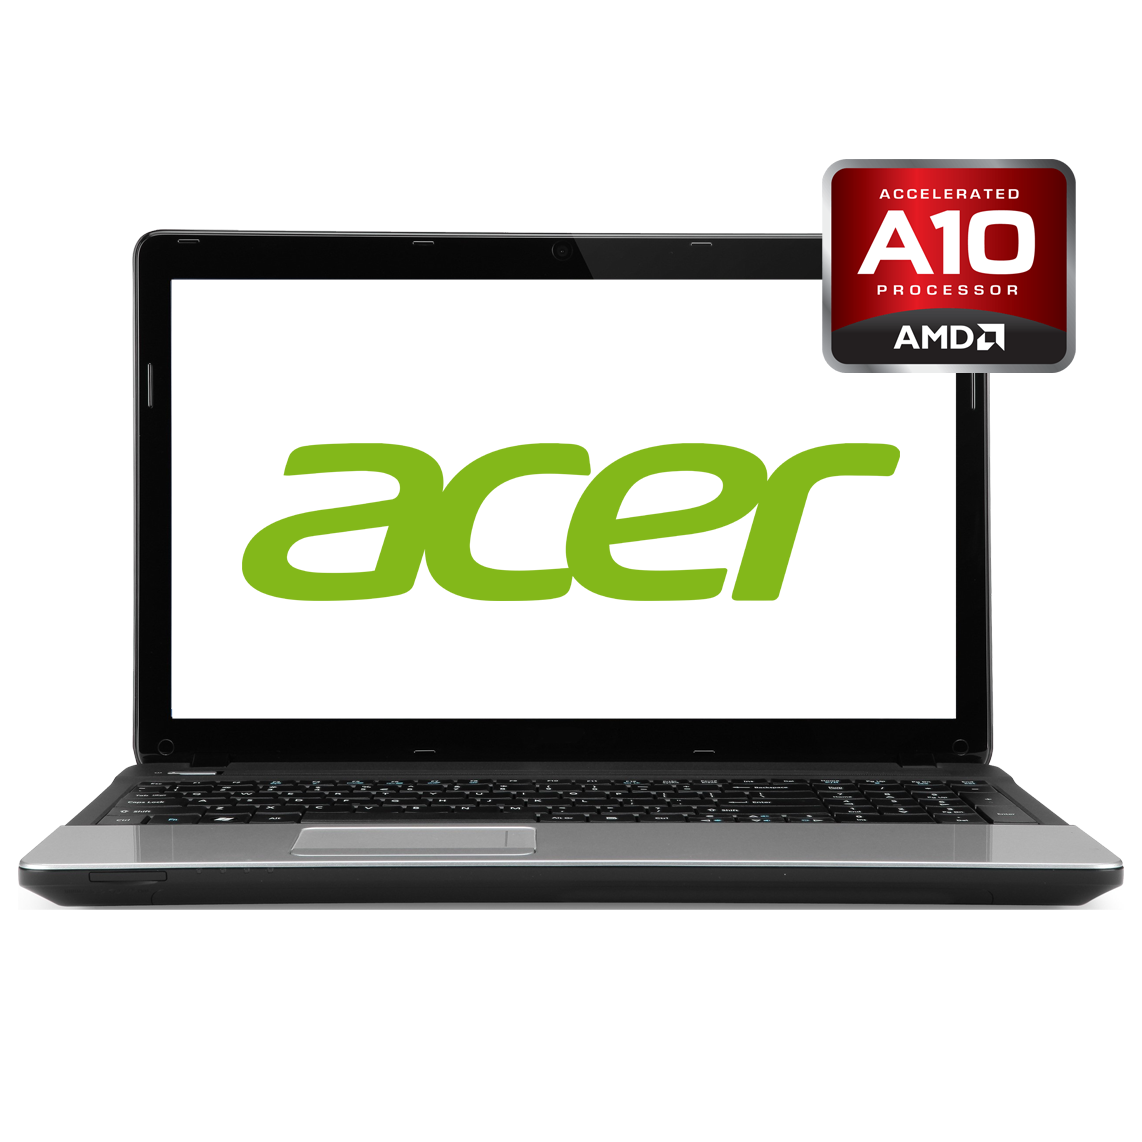 Acer - 16 inch AMD A10